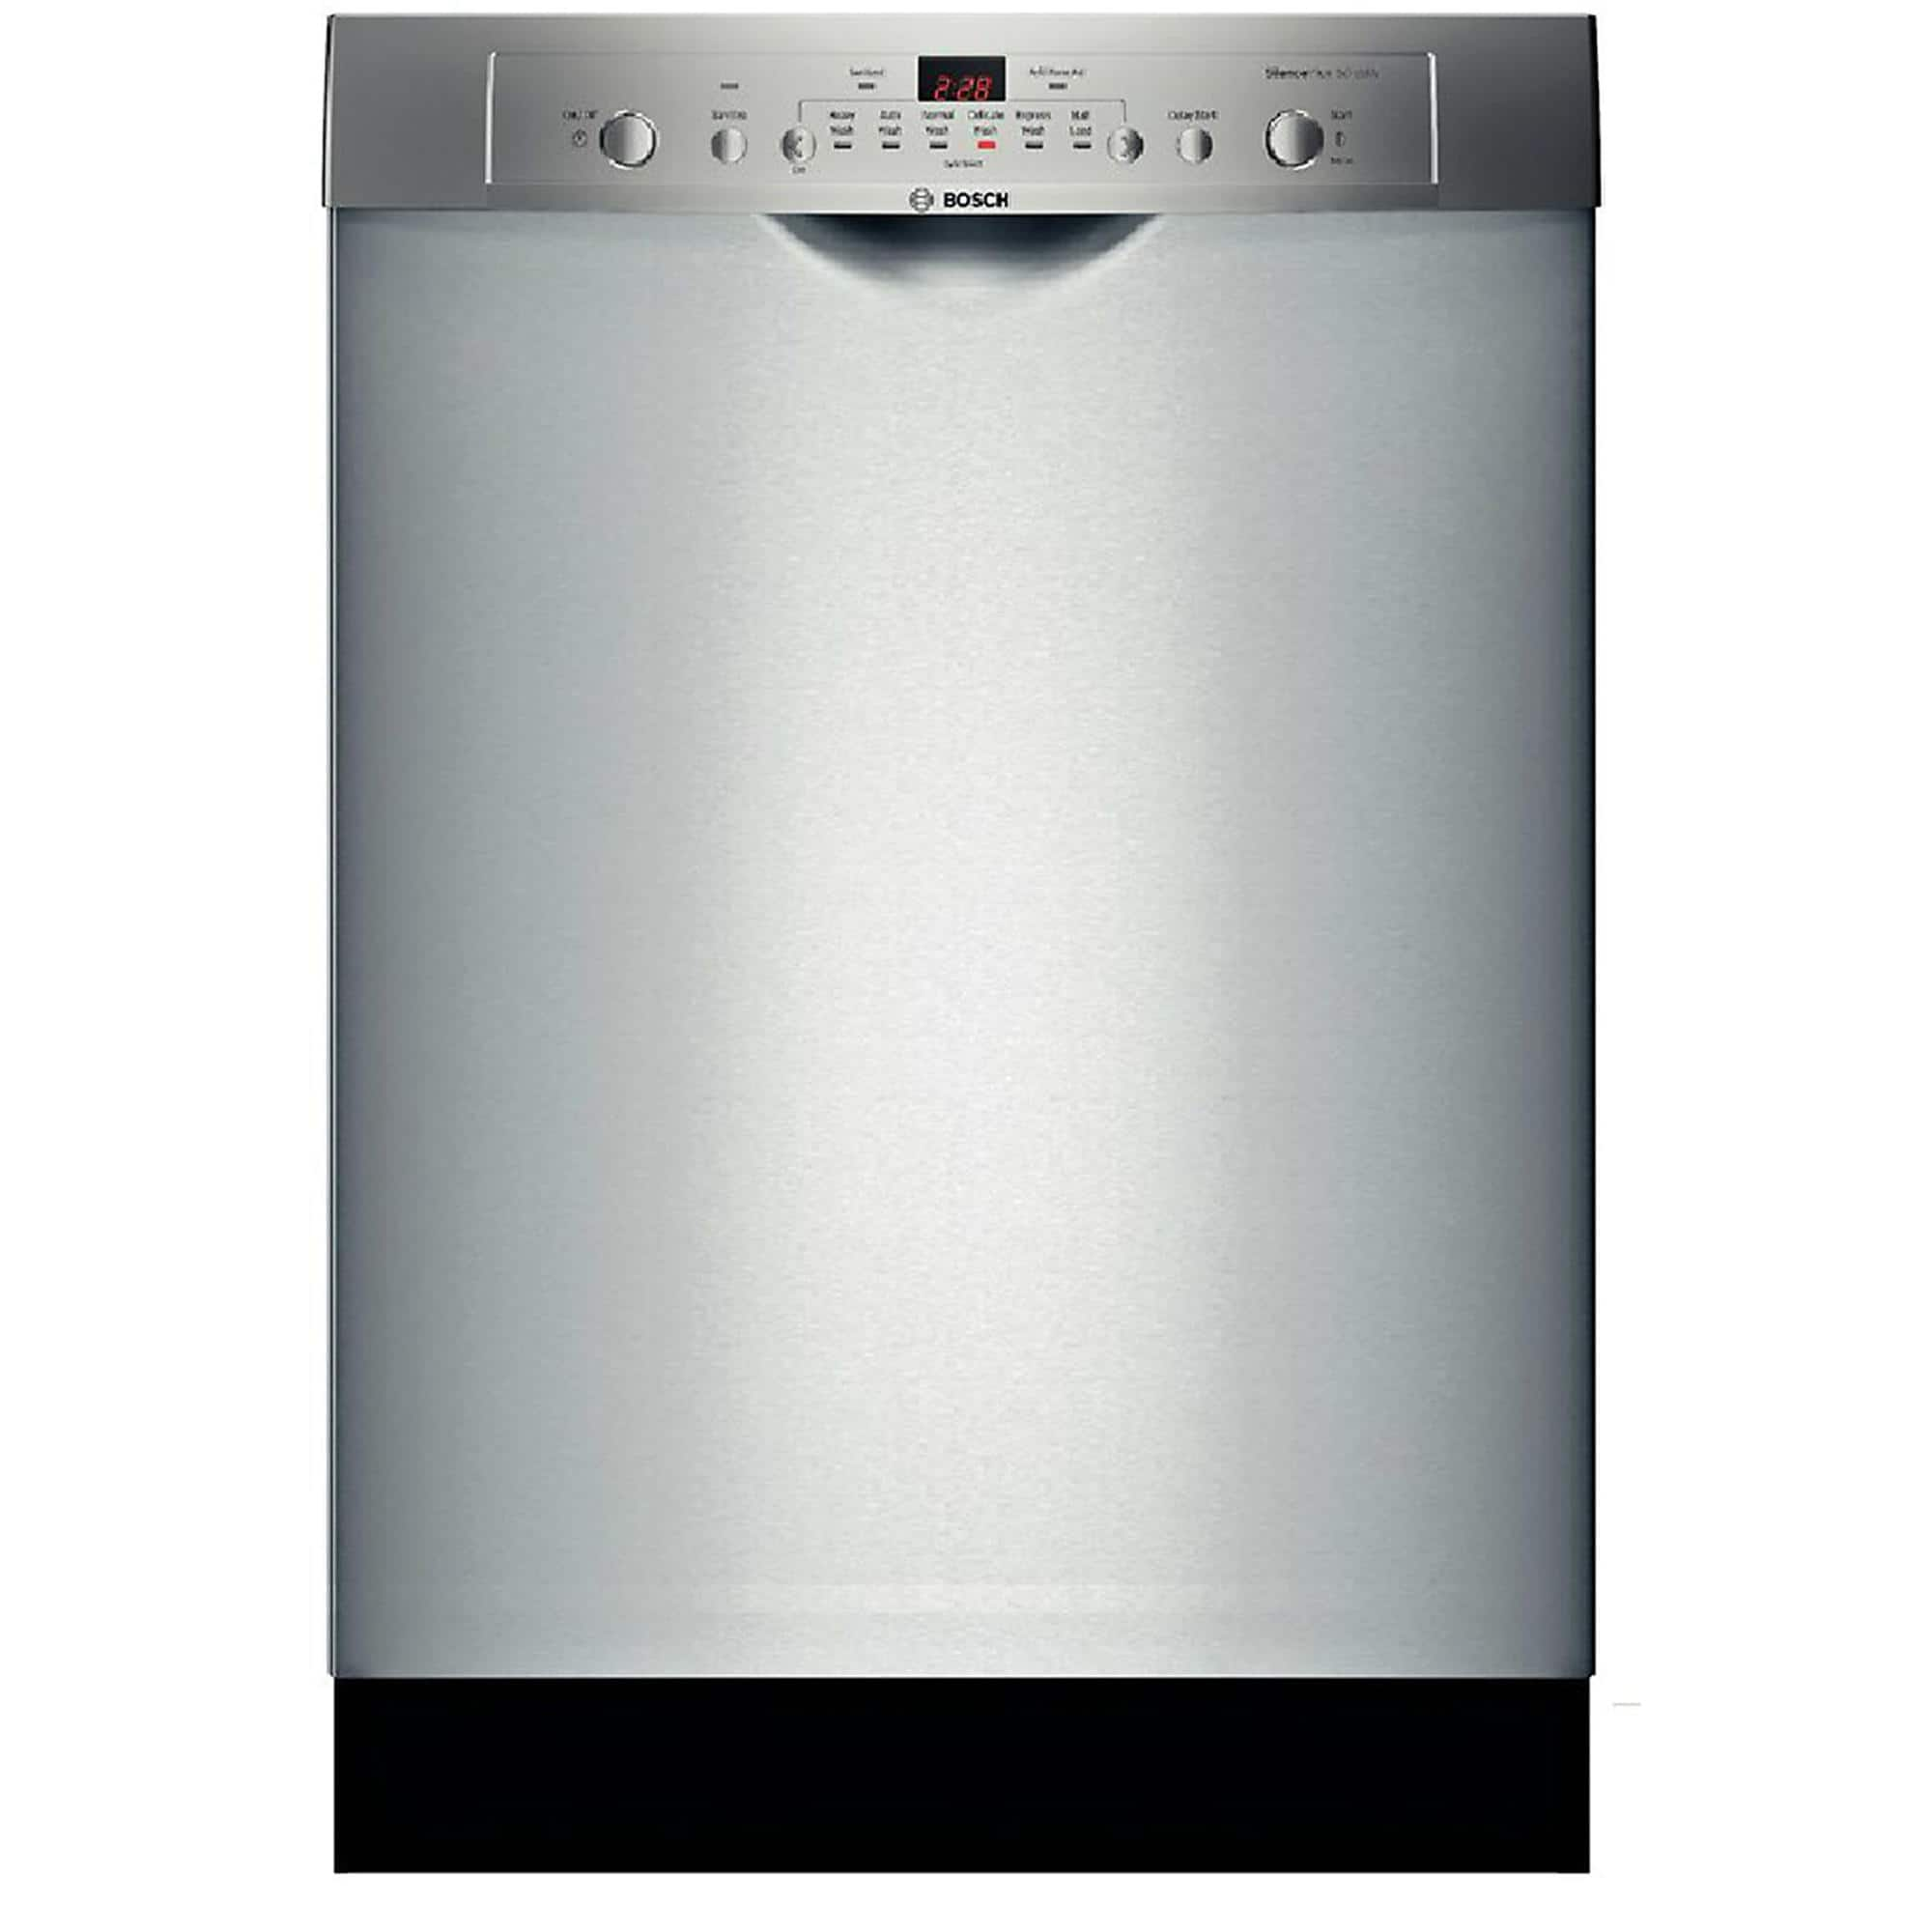 Bosch Ascenta 50-Decibel Dishwasher, $365 delivered @ Lowes AR/PM to BB